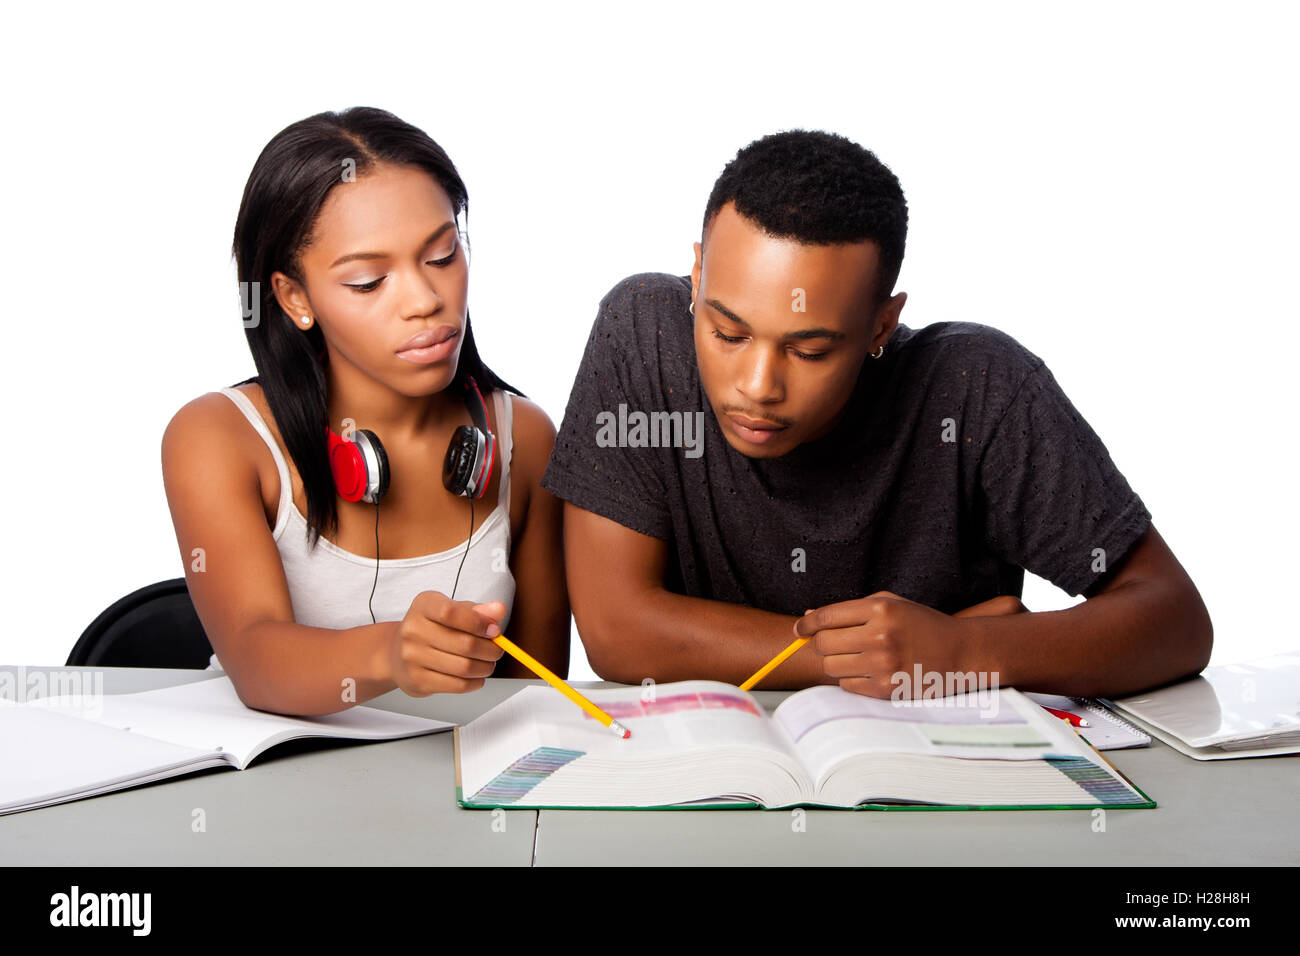 Two students studying together from text book, lifestyle tutoring concept, on white. Stock Photo